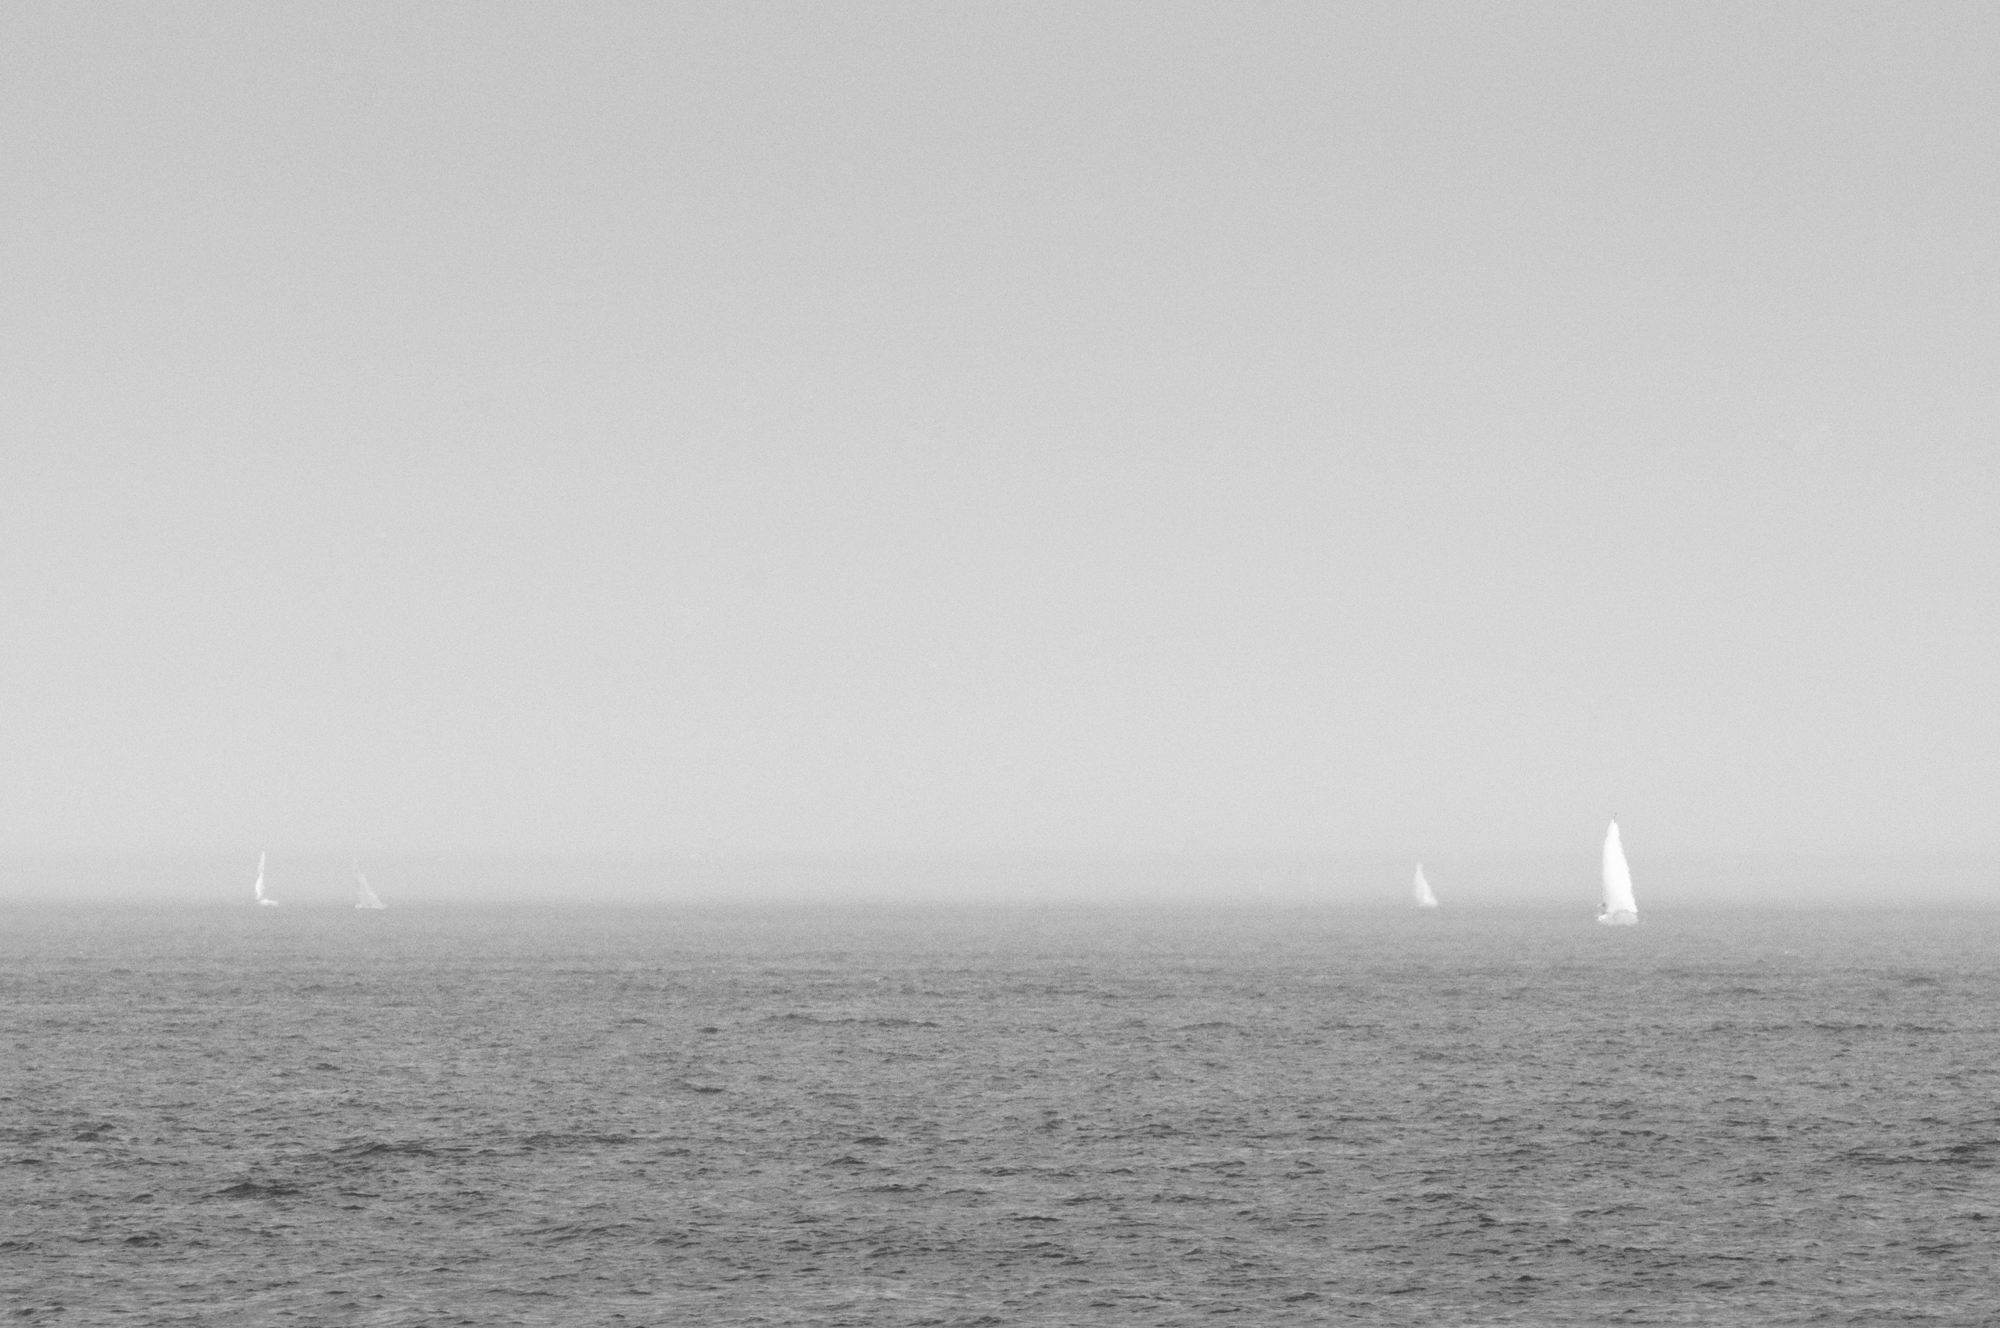 "Photograph taken by Ian Smith - Photo ""Mellow Sailing"" was taken overlooking the Mediterranean Sea, off the coast of Santa Margherita, Italy in 2015"